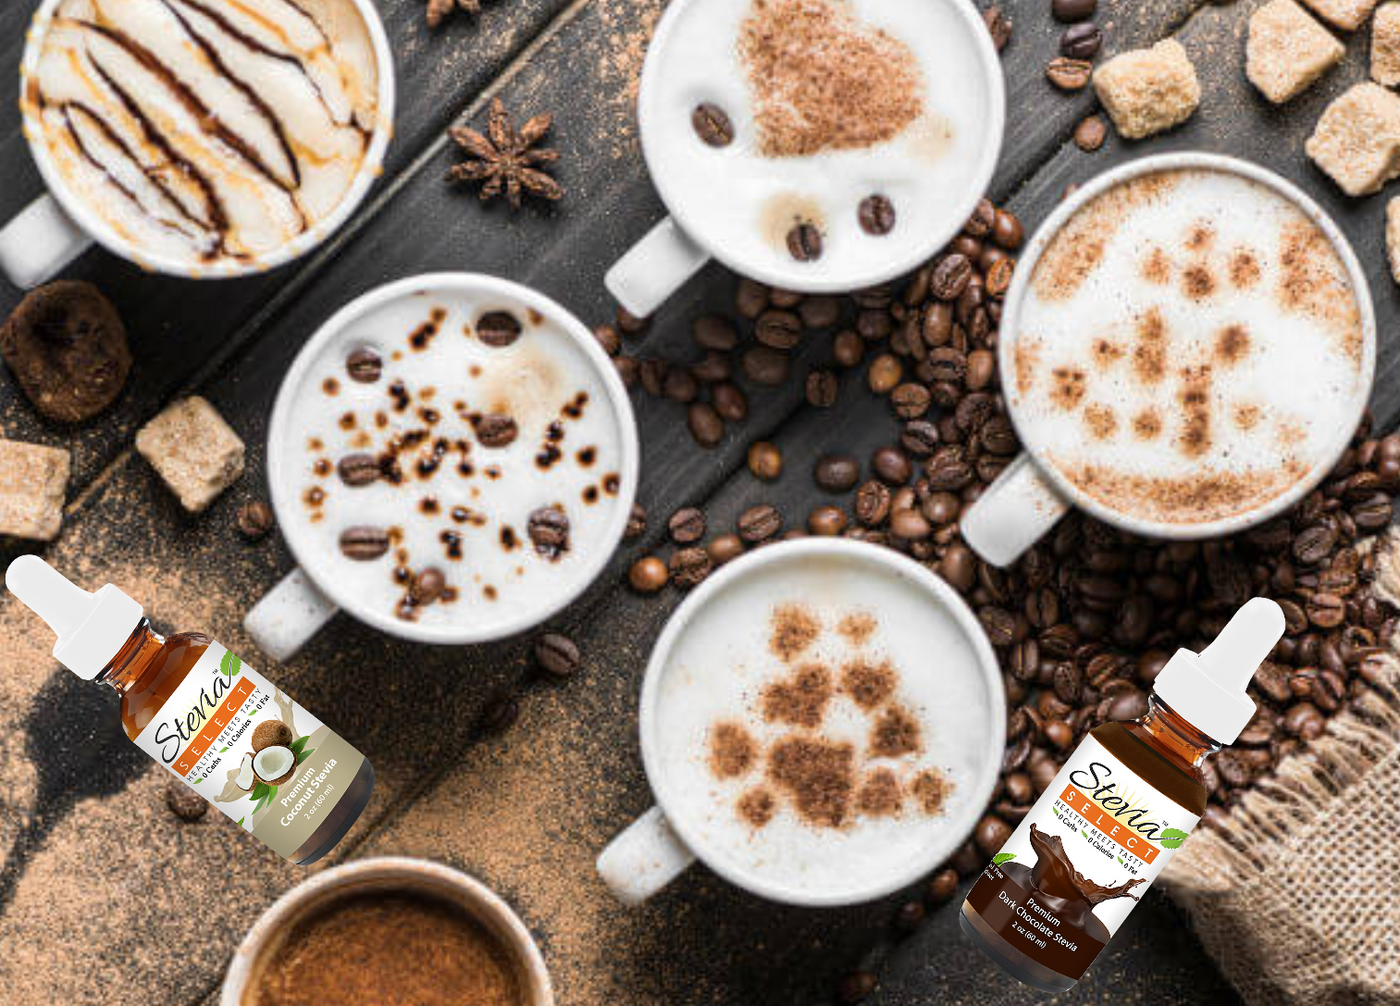 stevia select Keto sugar-free coffee flavors. Pure stevia and stevia flavors. sugar free keto coffee sweeteners. diabetic friendly and will not effect glycemic levels. Keto coffee sweeteners all natural sugar substitute.